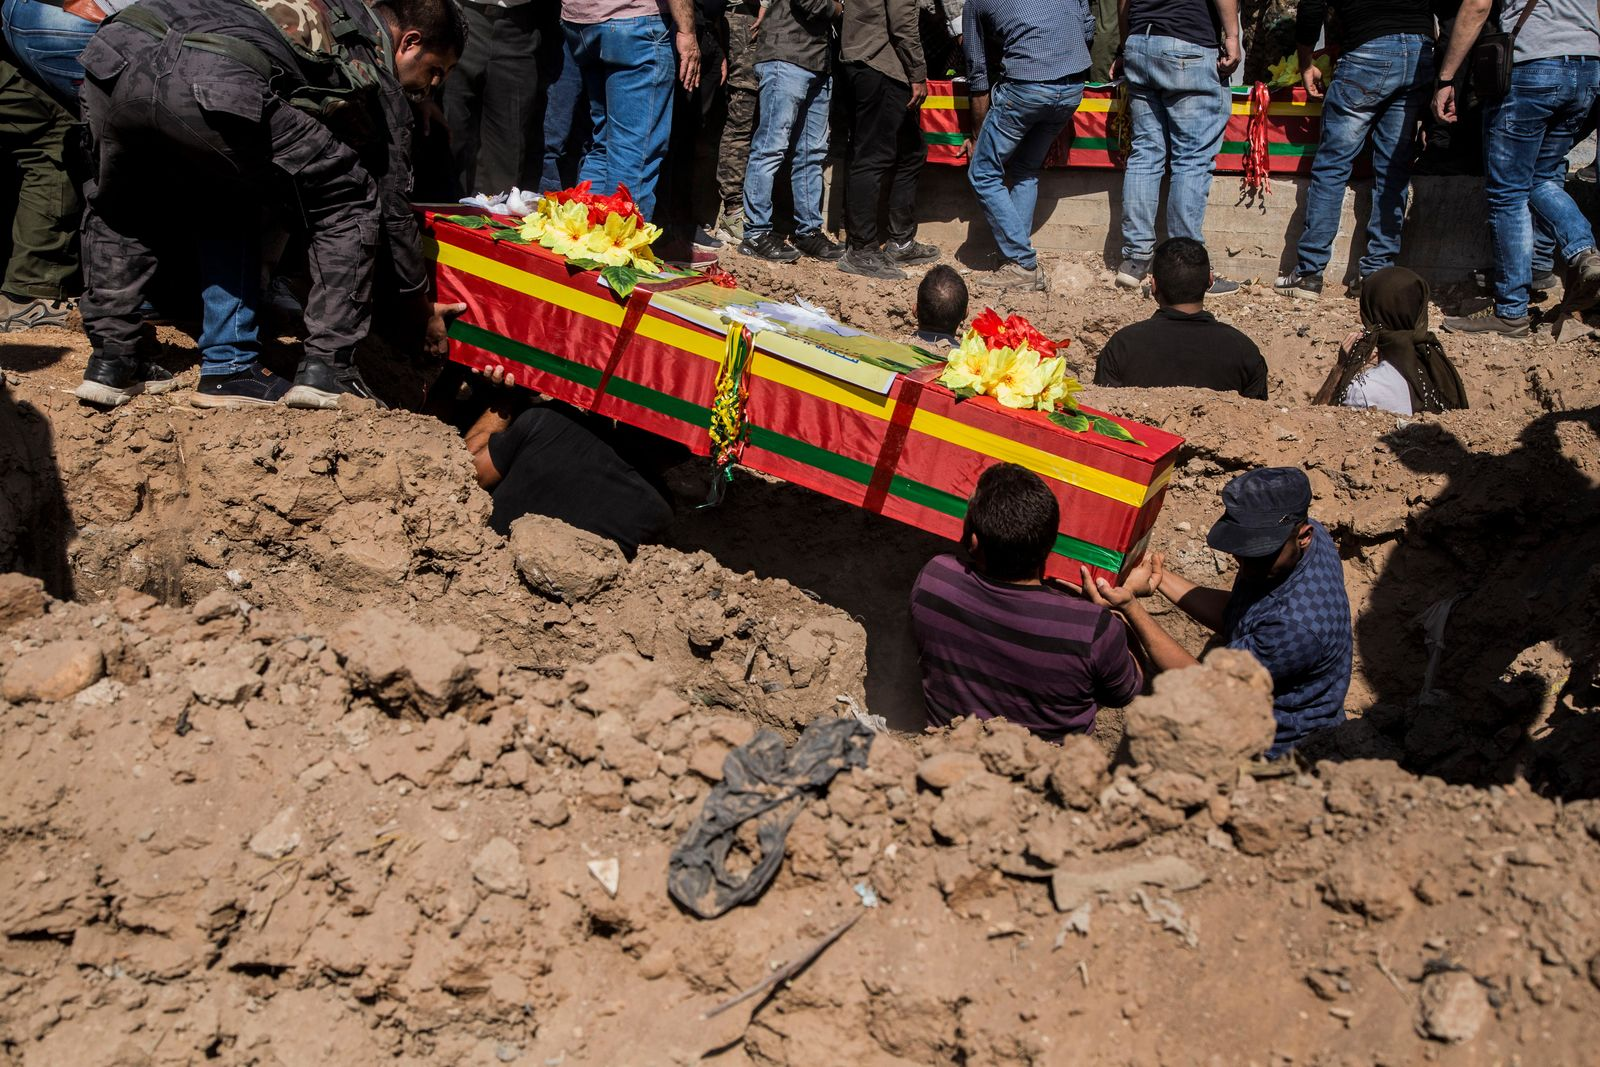 People attend funerals of fighters of the Syrian Democratic Forces killed fighting Turkish advance, in the town of Qamishli, northern Syria, Wednesday, Oct. 16, 2019. (AP Photo/Baderkhan Ahmad)